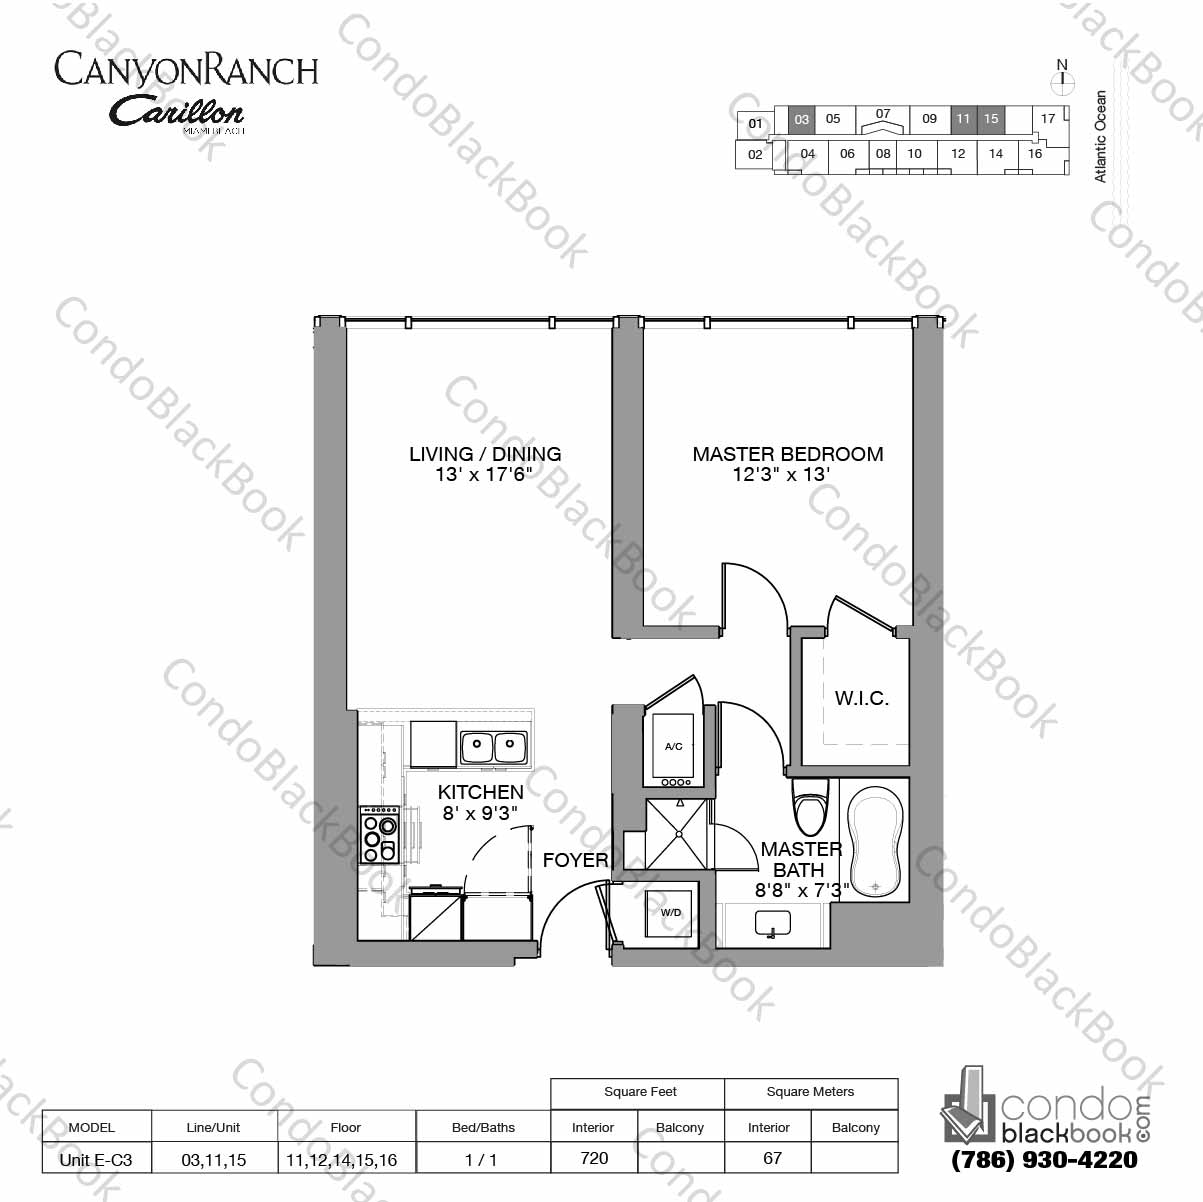 Floor plan for Carillon Miami Resort & Condo North Beach Miami Beach, model Unit E-C3, line 03,11,15, 1 / 1 bedrooms, 720 sq ft